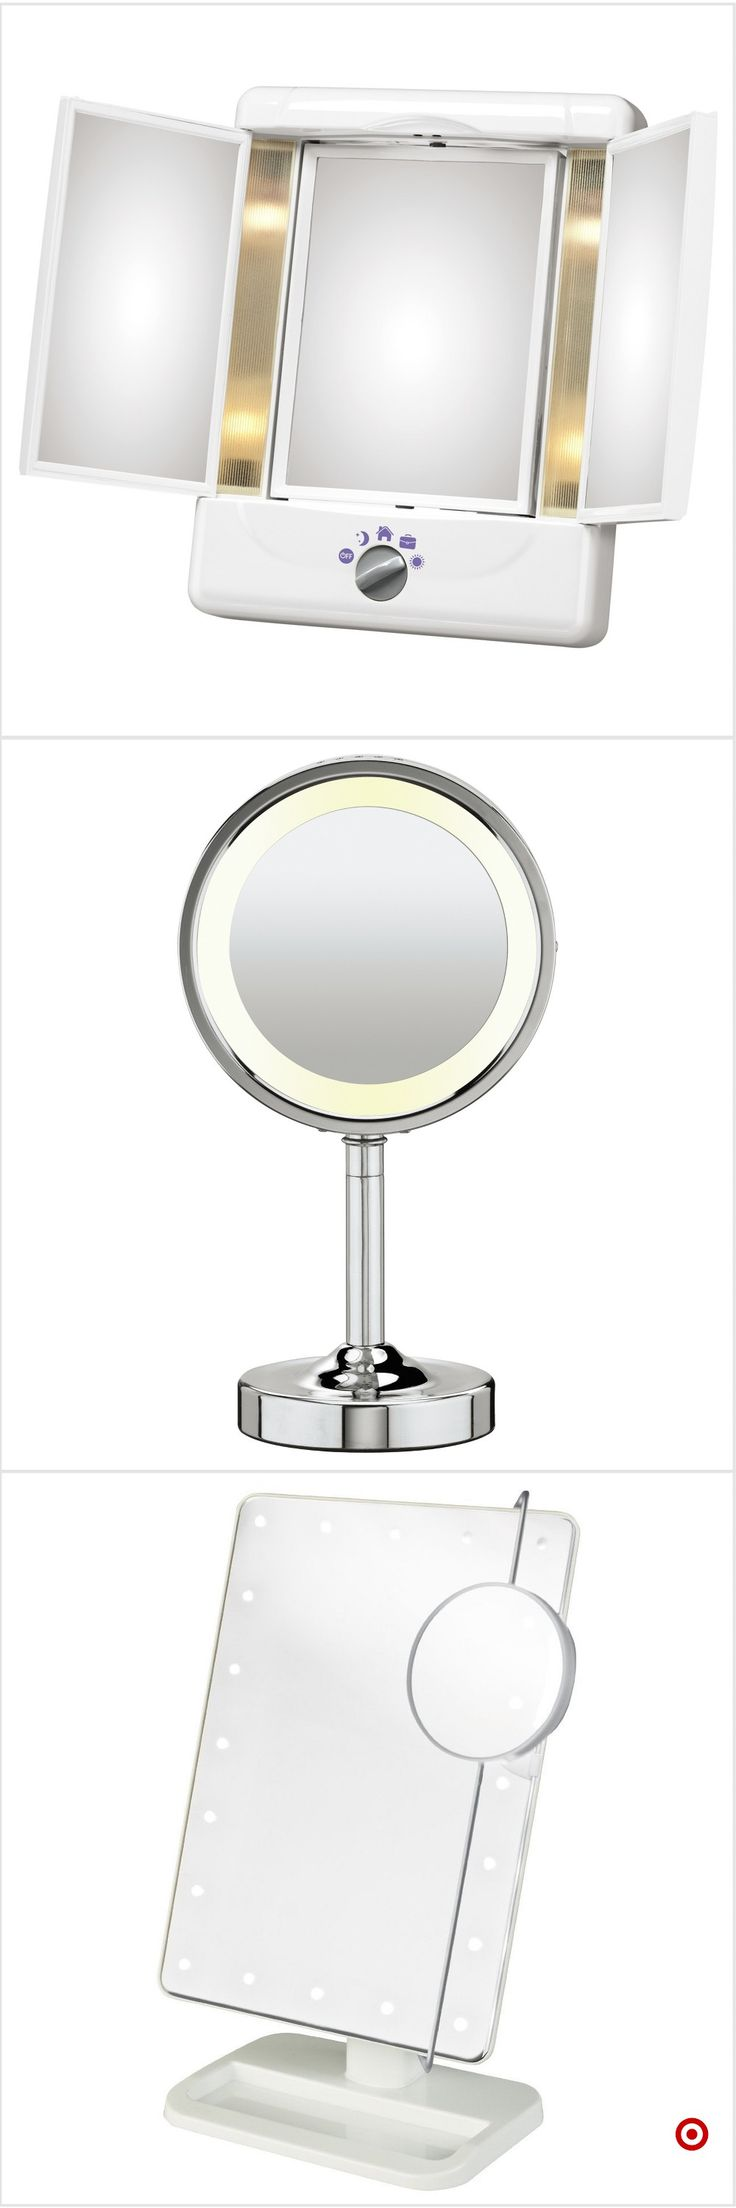 Shop Target for makeup mirrors you will love at great low prices. Free shipping on orders of $35+ or free same-day pick-up in store.